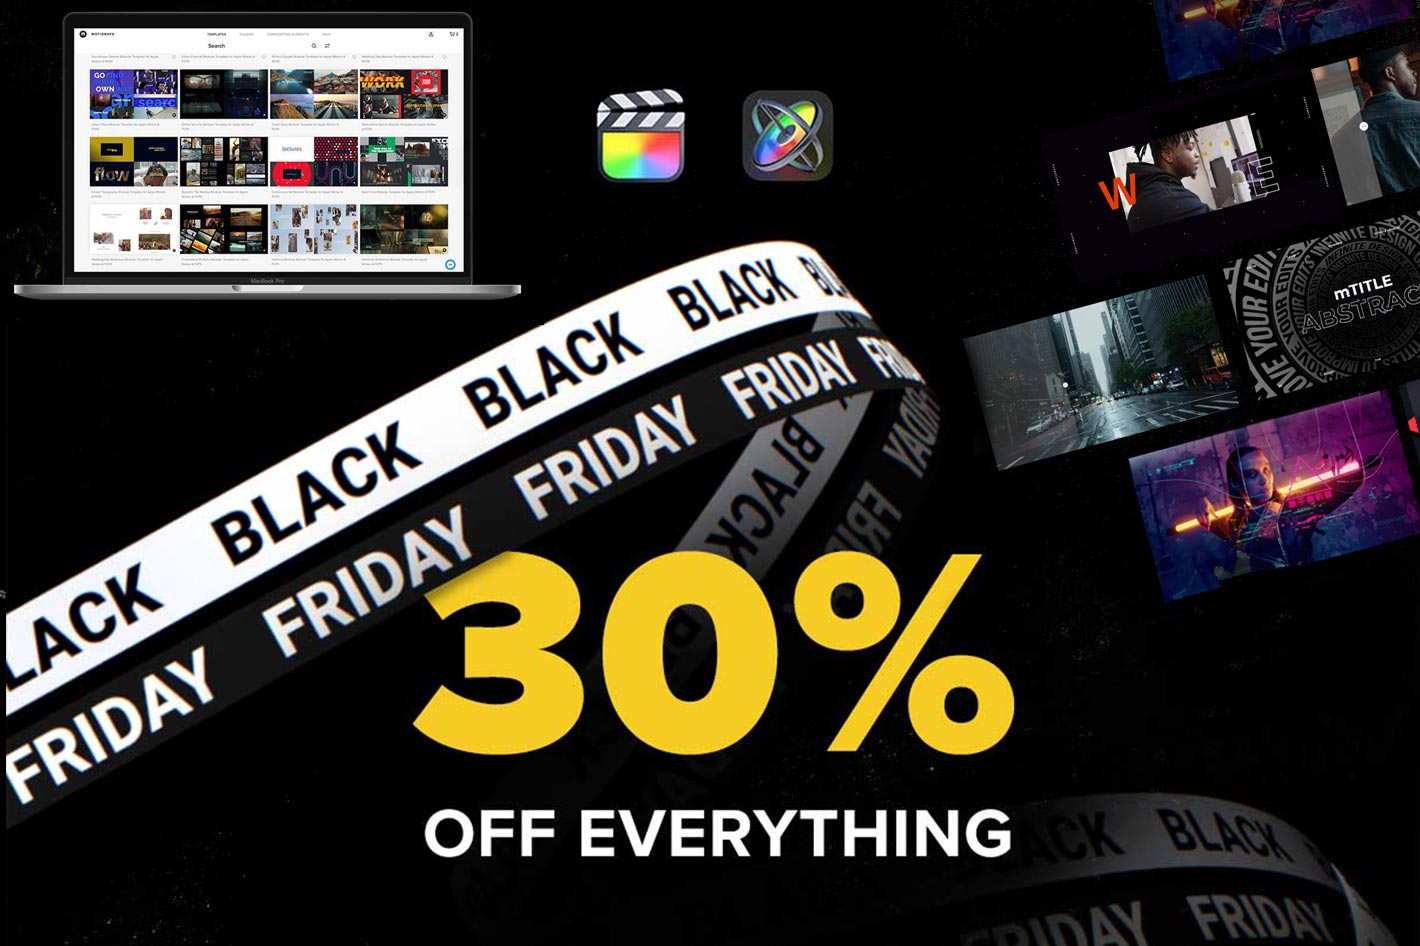 PVC's Black Friday 2020 best deals: Black Friday is today!